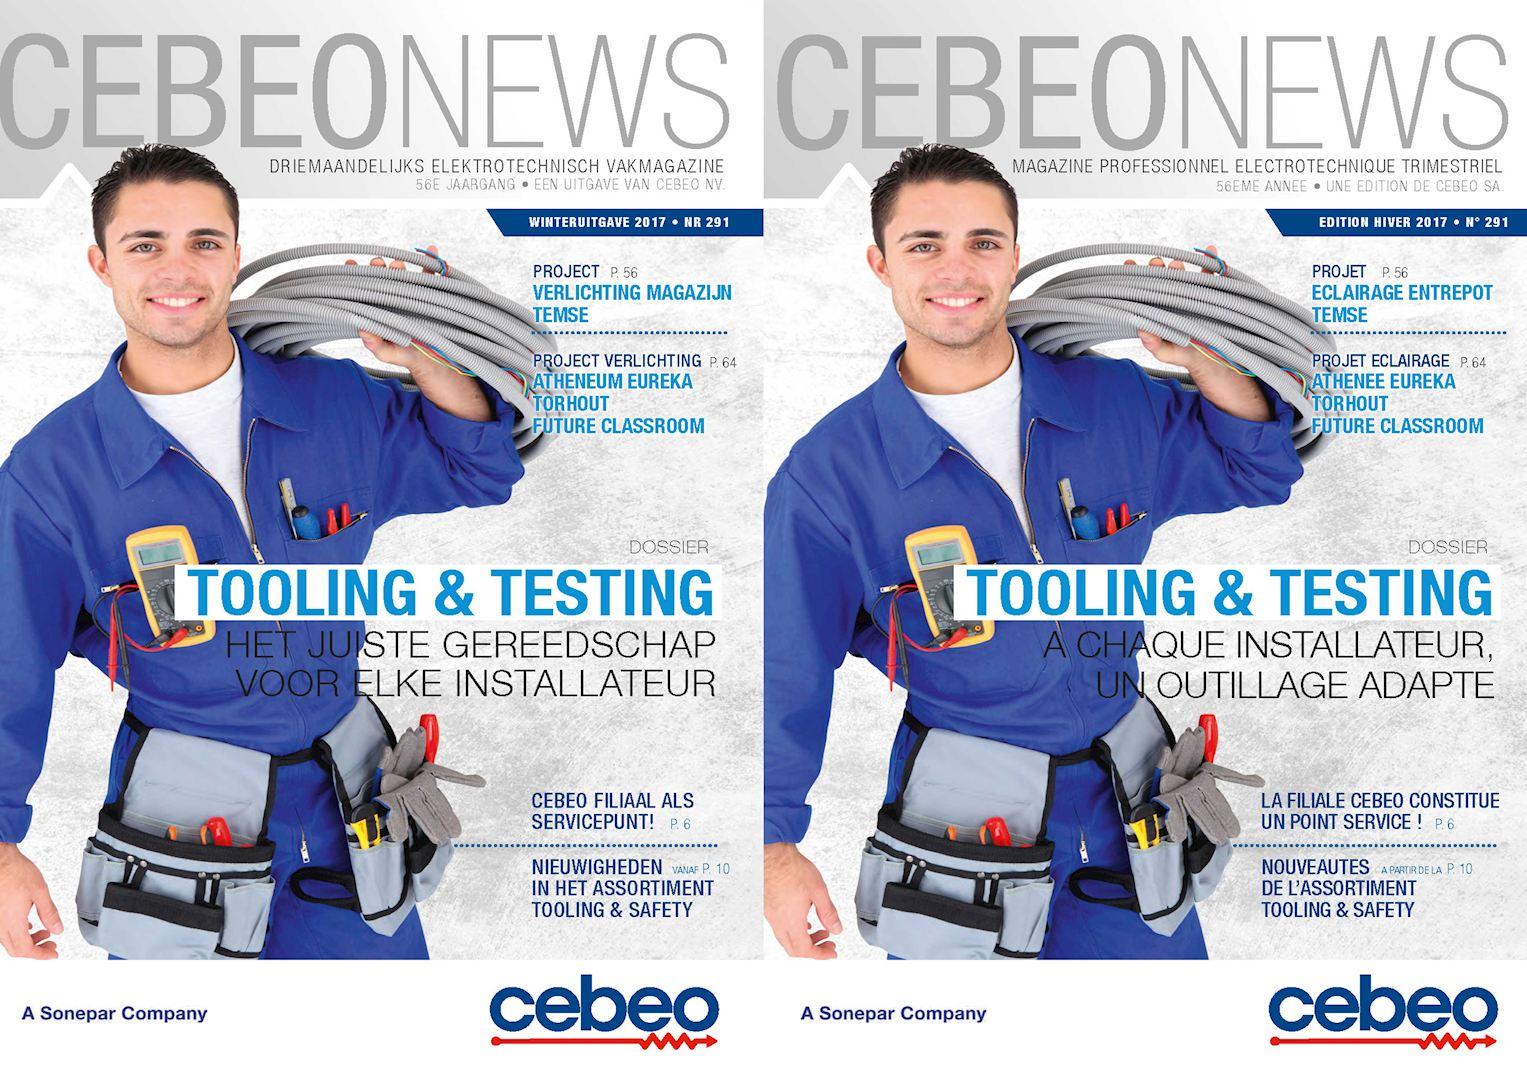 Cebeo News 291 Tooling